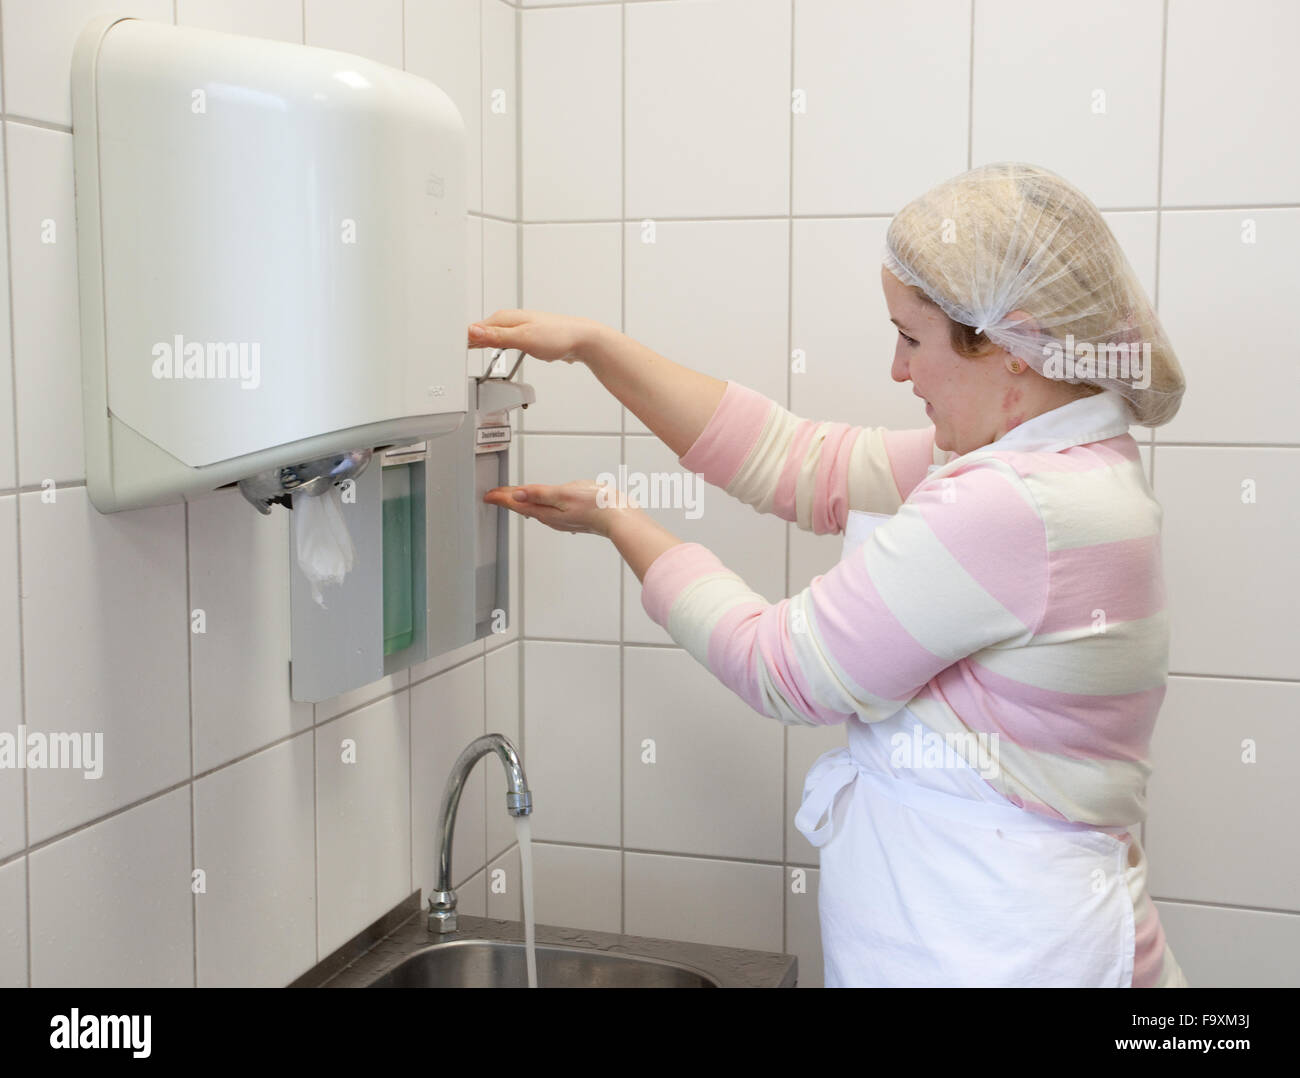 Larder cook  washes her hands. - Stock Image